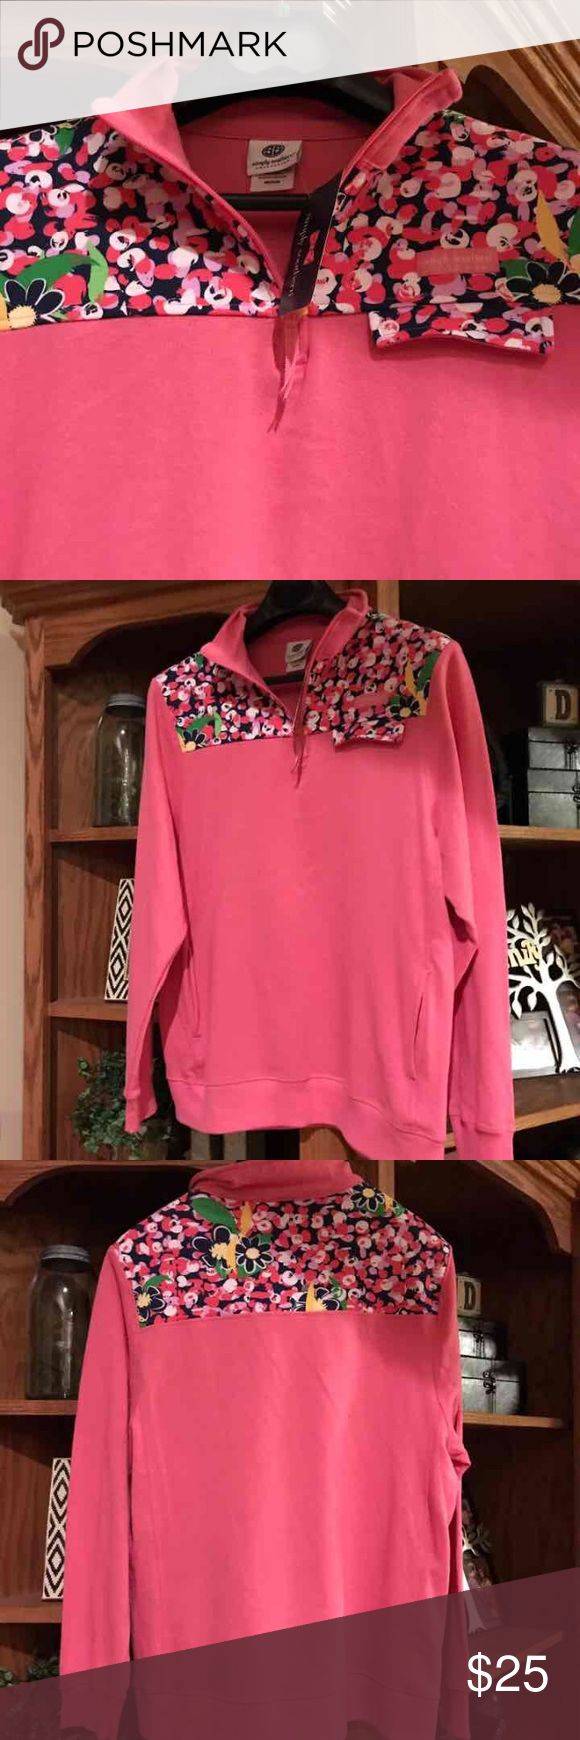 NWT Simply southern pullover--Strawberry daisy NWT Simply Southern quarter zip pullover. Cute contrasting pattern. Brand new!! Never worn!! Super cute and must have for cool summer nights. Simply Southern Tops Sweatshirts & Hoodies